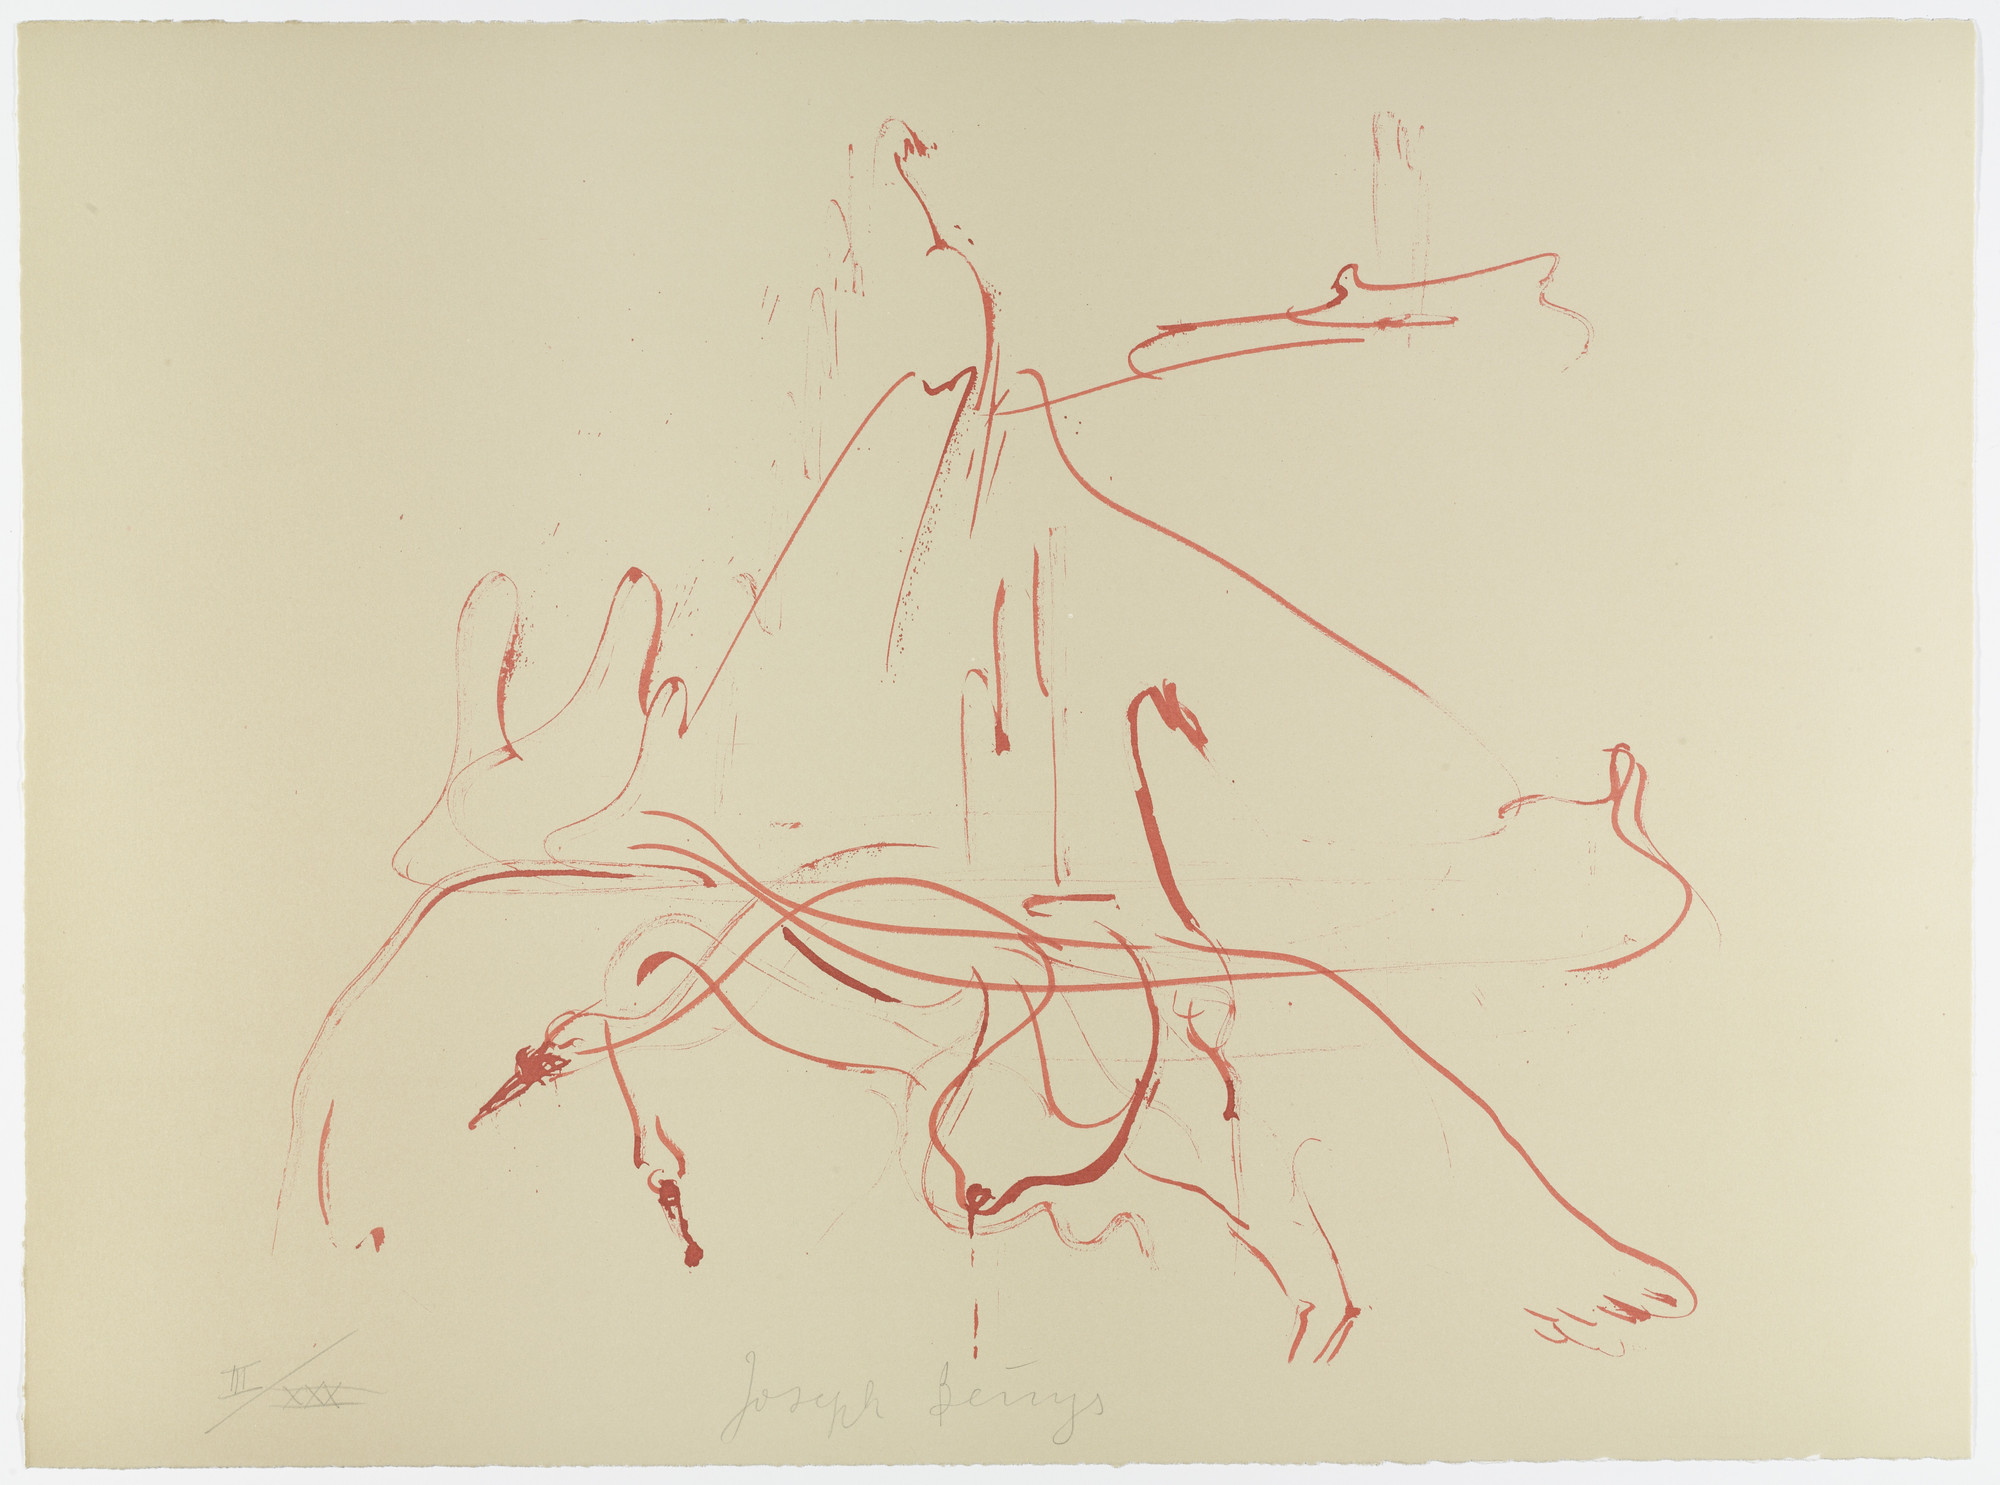 Joseph Beuys. Untitled from Homage to Picasso (Hommage à Picasso). 1973